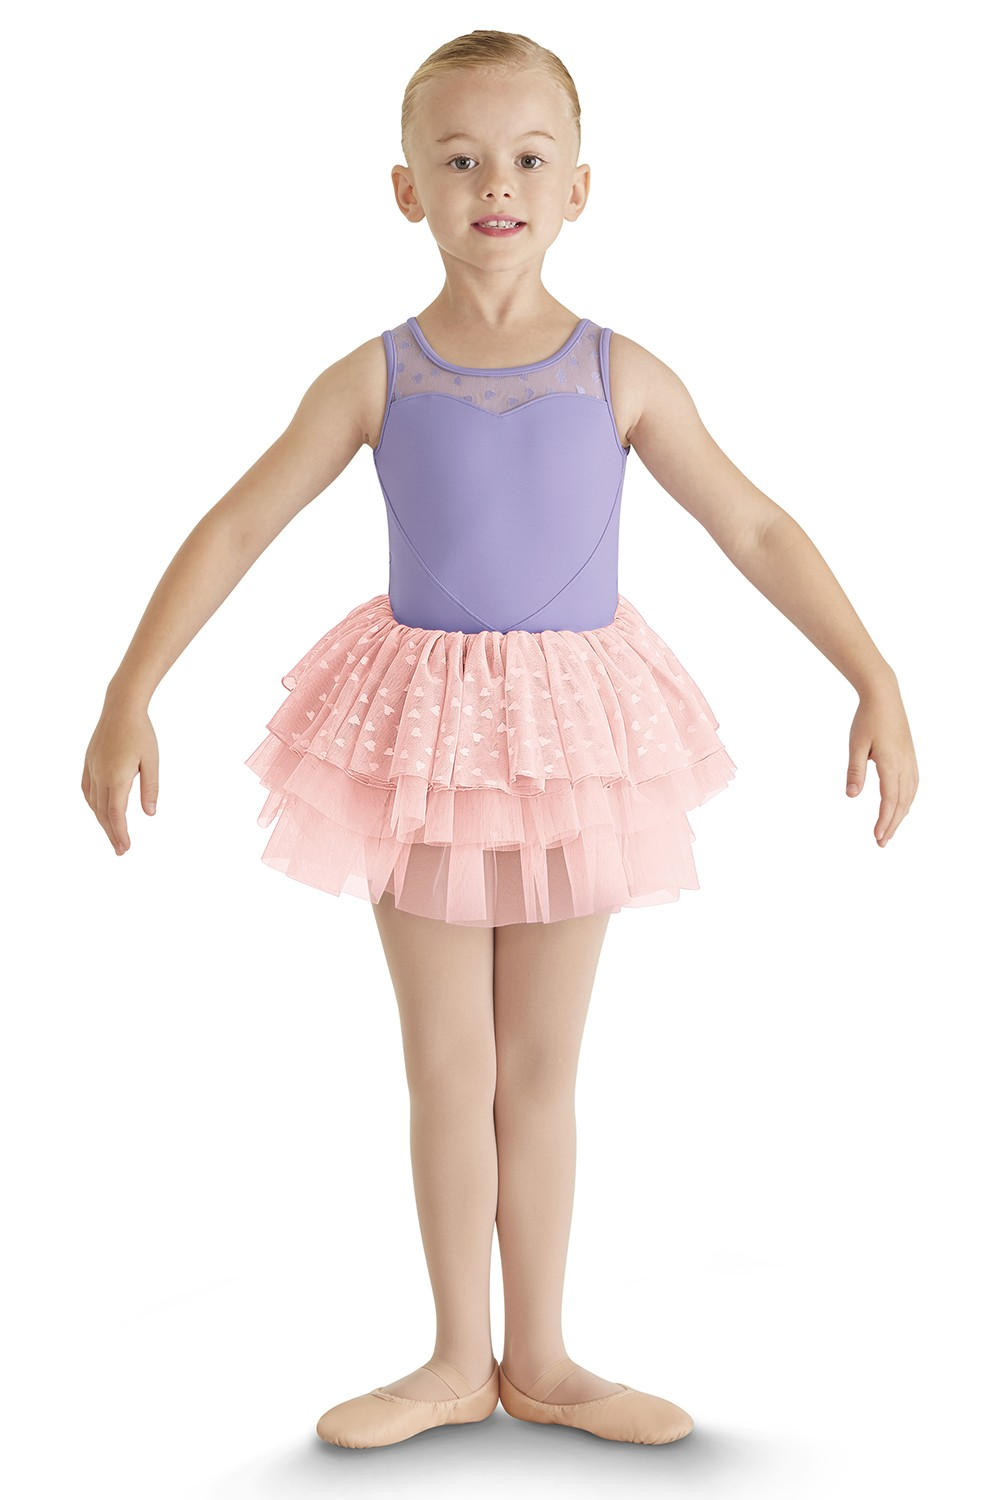 Gaea Children's Dance Skirts